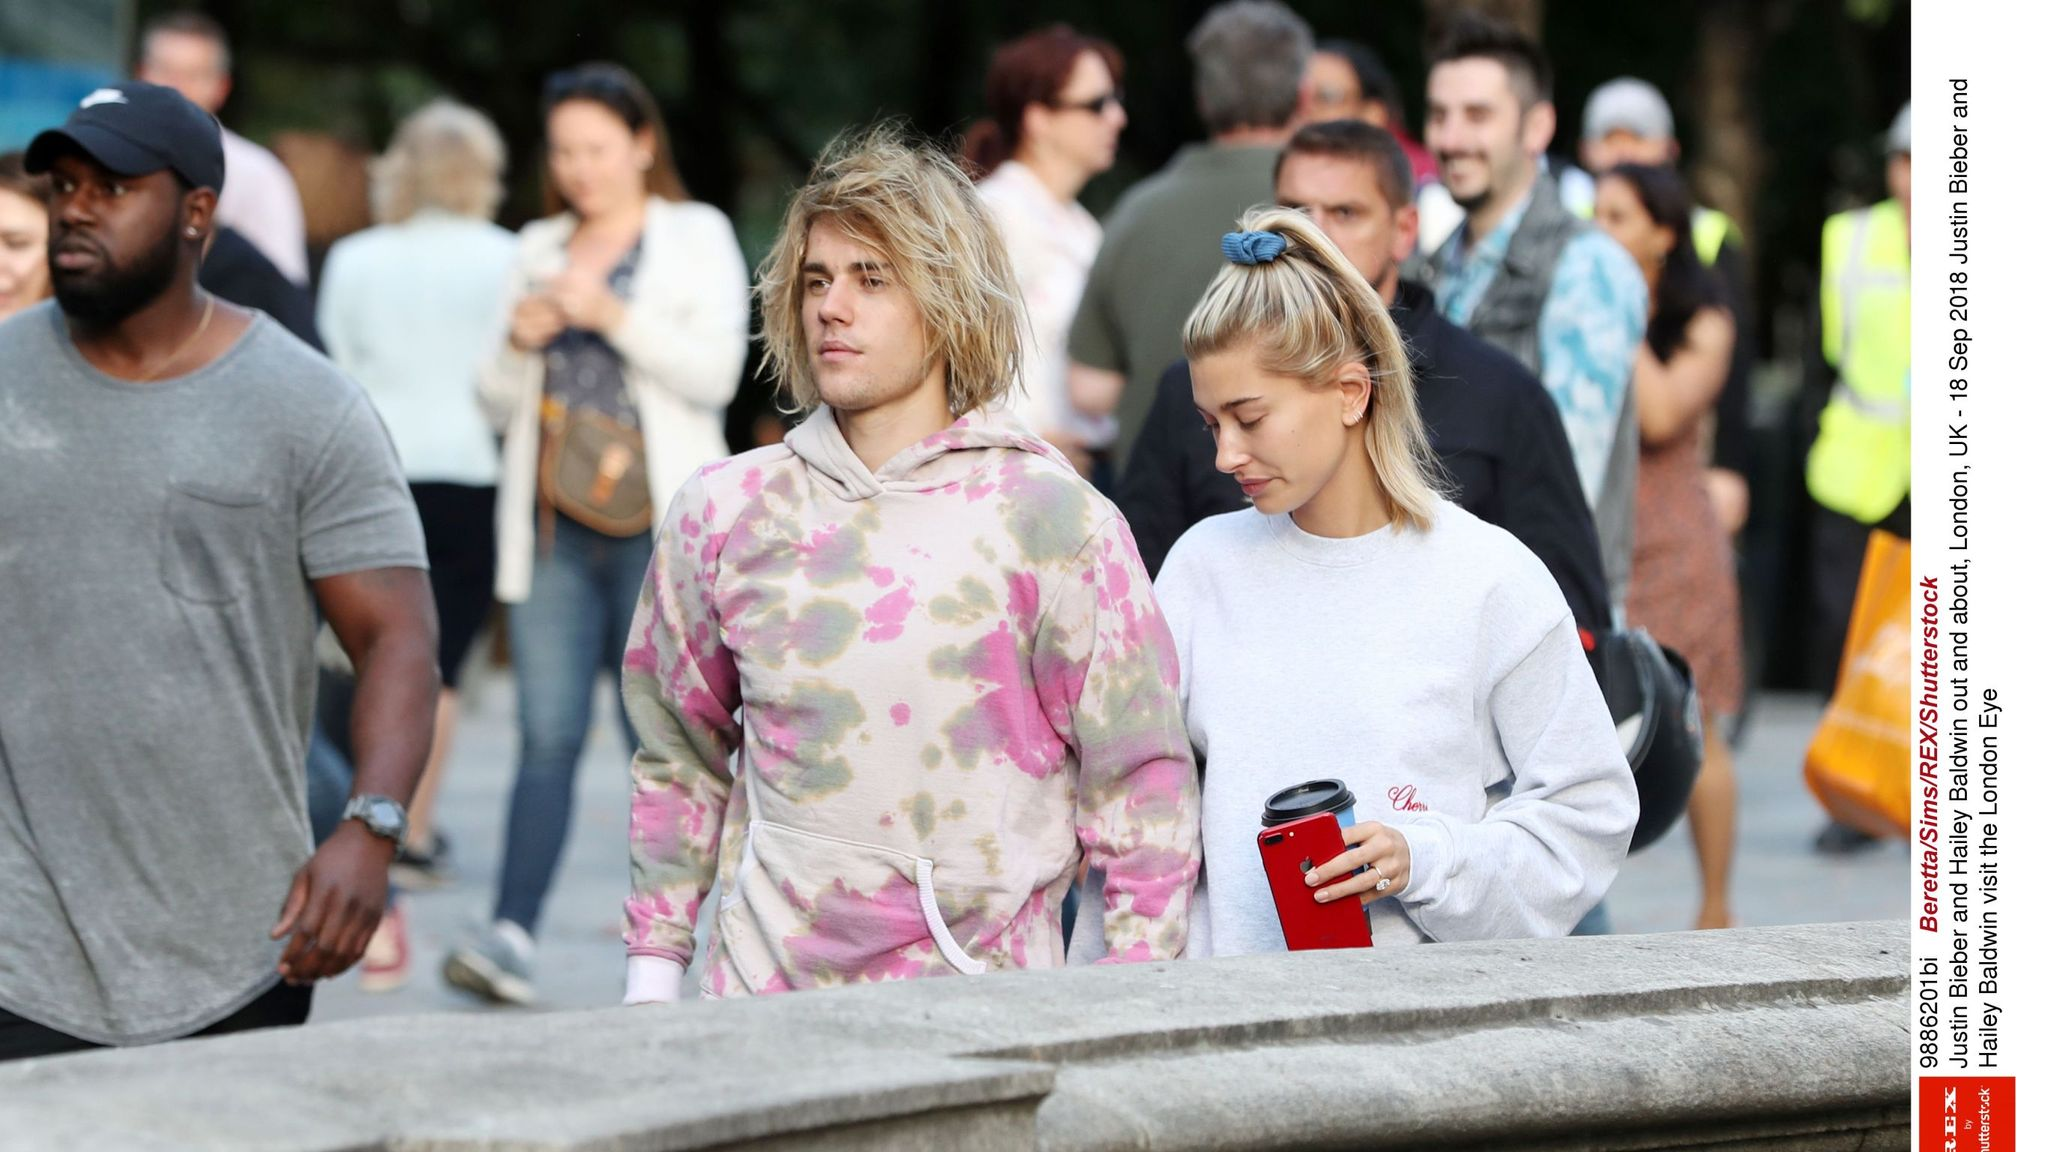 Justin Bieber And Hailey Baldwin Married Says Uncle Alec Despite Model S Denial Ents Arts News Sky News